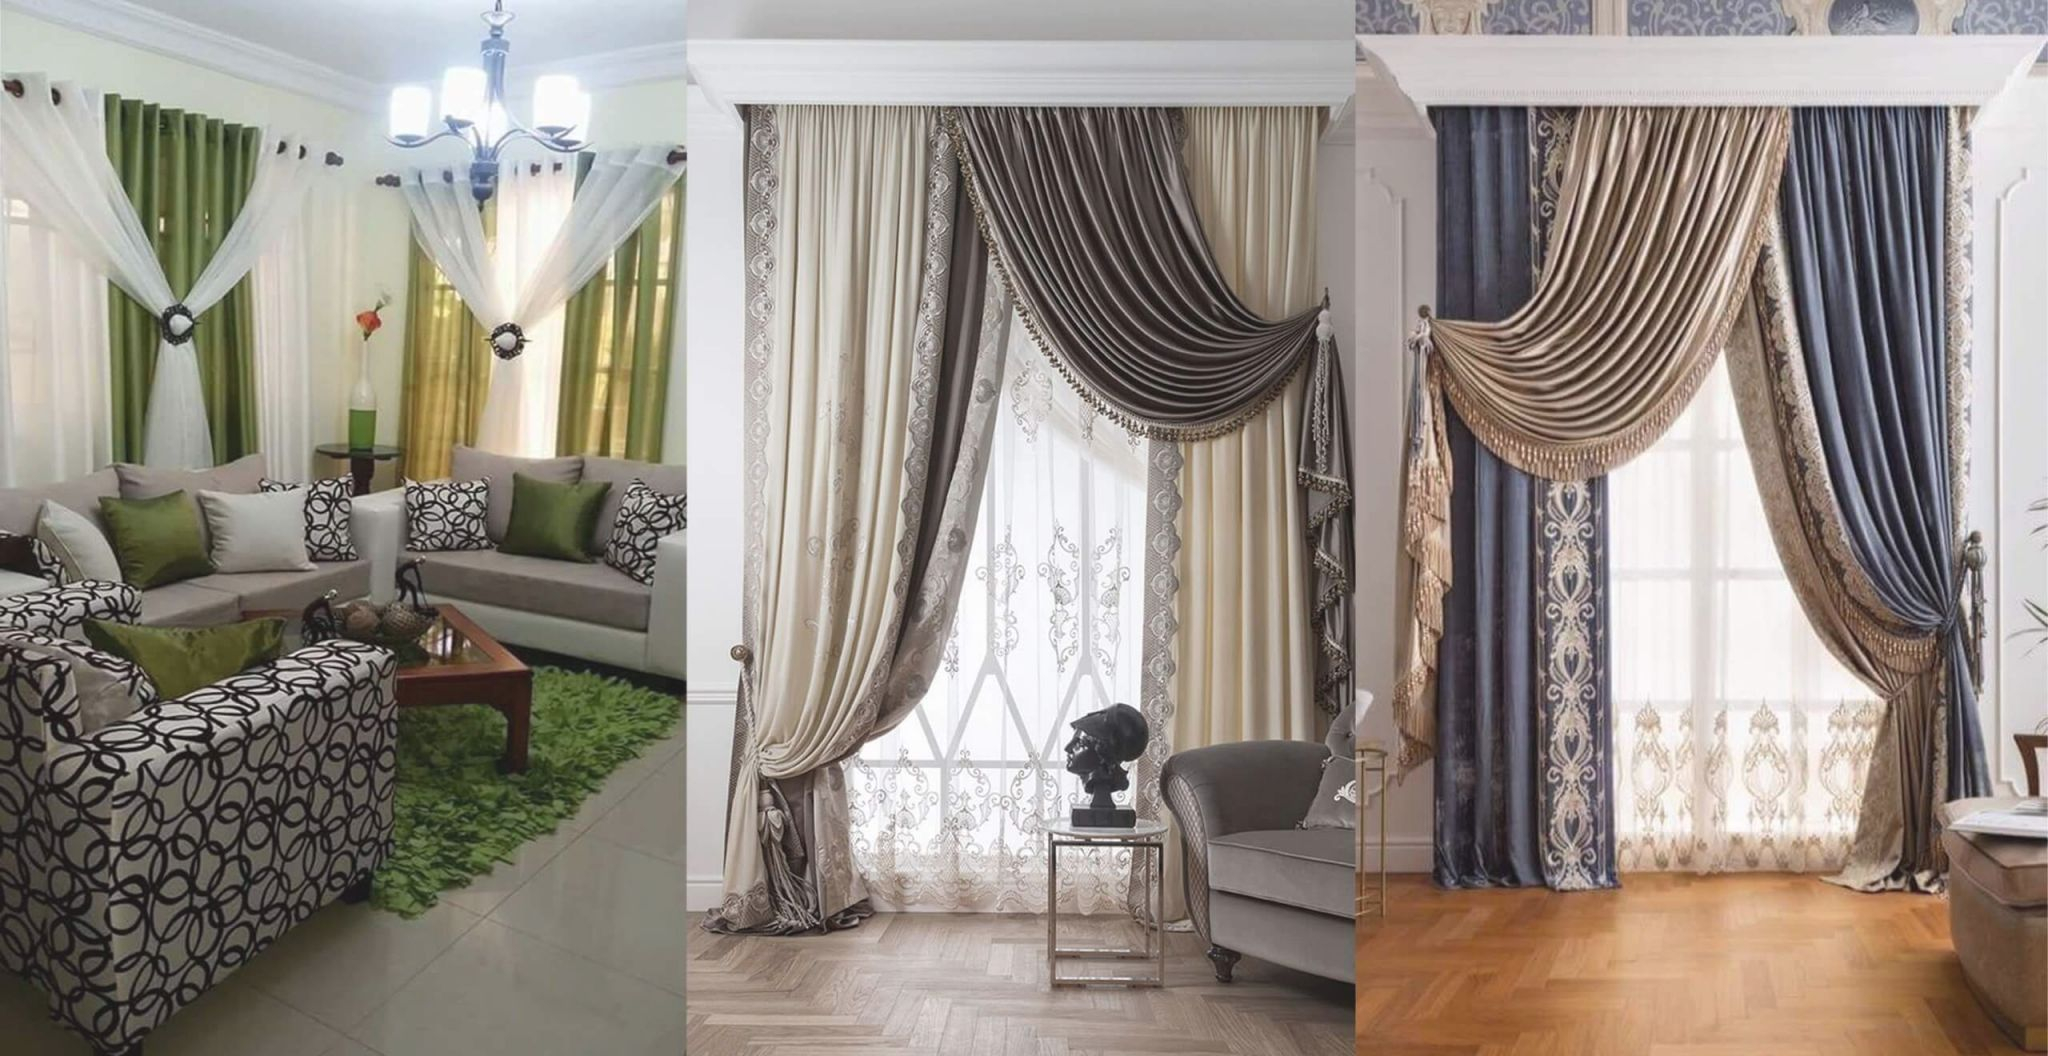 Creative And Beautiful Curtains Ideas Engineering Discoveries Inside Amazing Inspiration For Beautiful Curtains For Living Room Awesome Decors